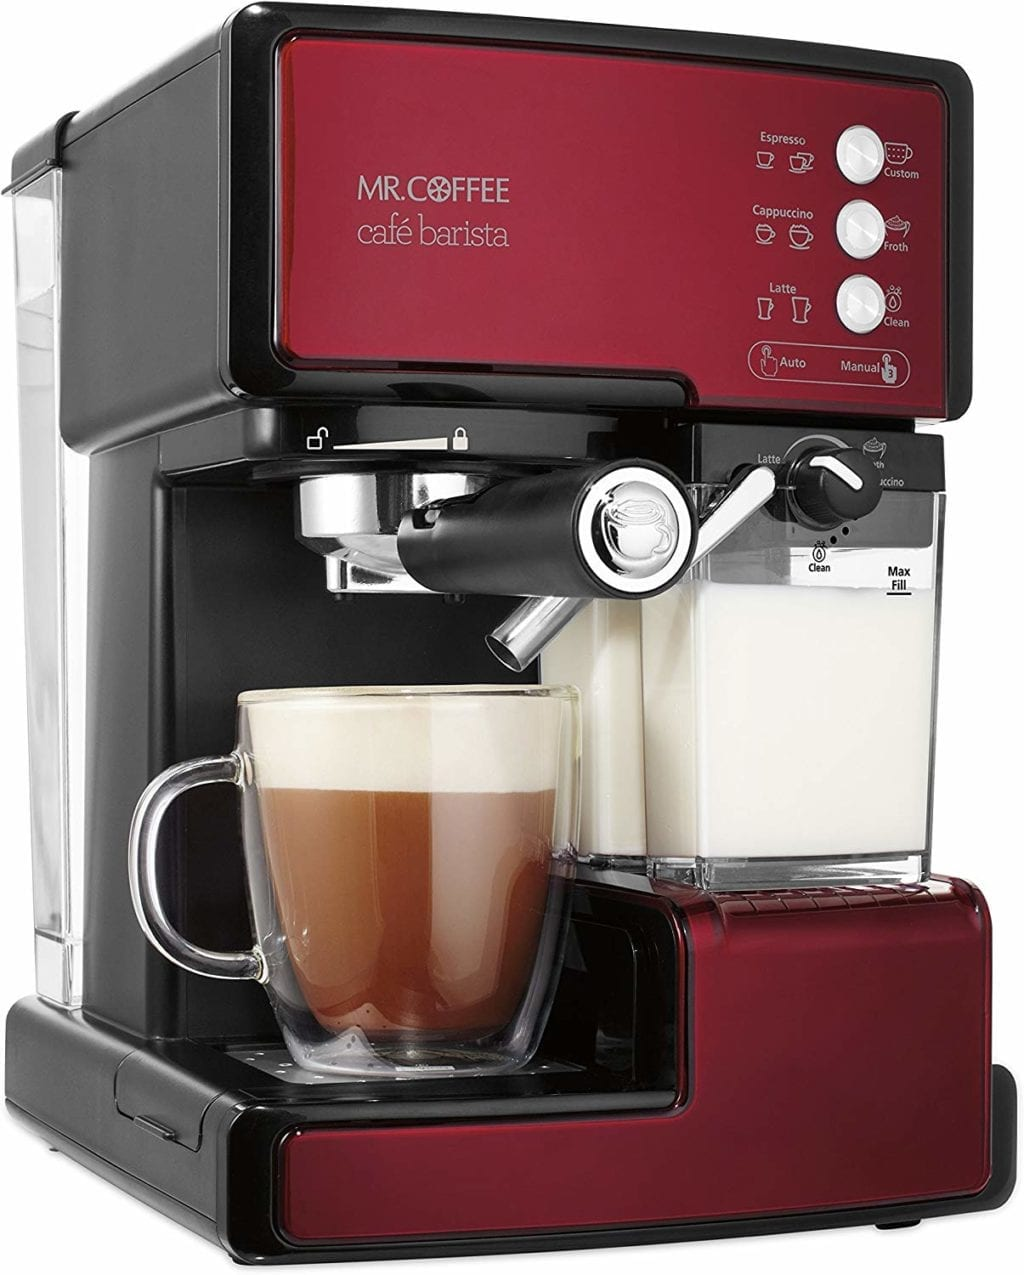 Mr. Coffee Cafe Barista BVMC-ECMP1106